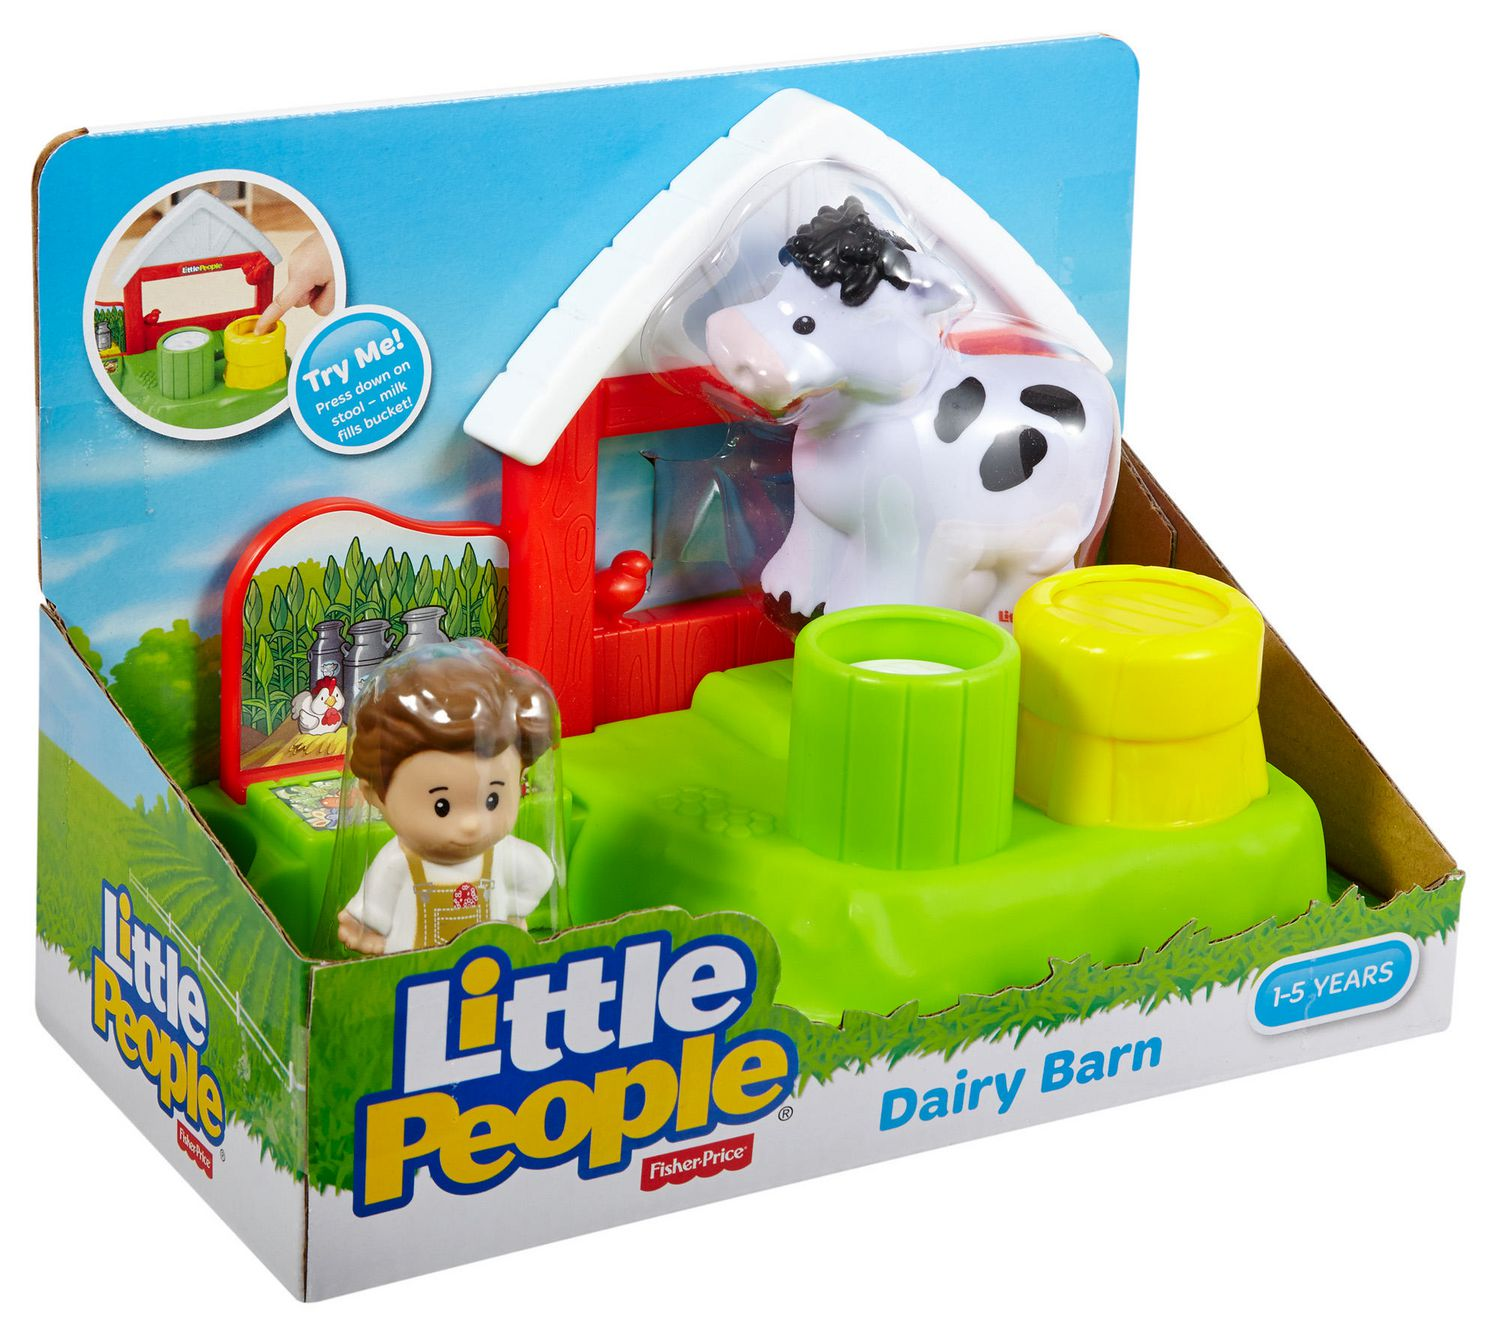 Fisher Price Little People Dairy Barn Playset